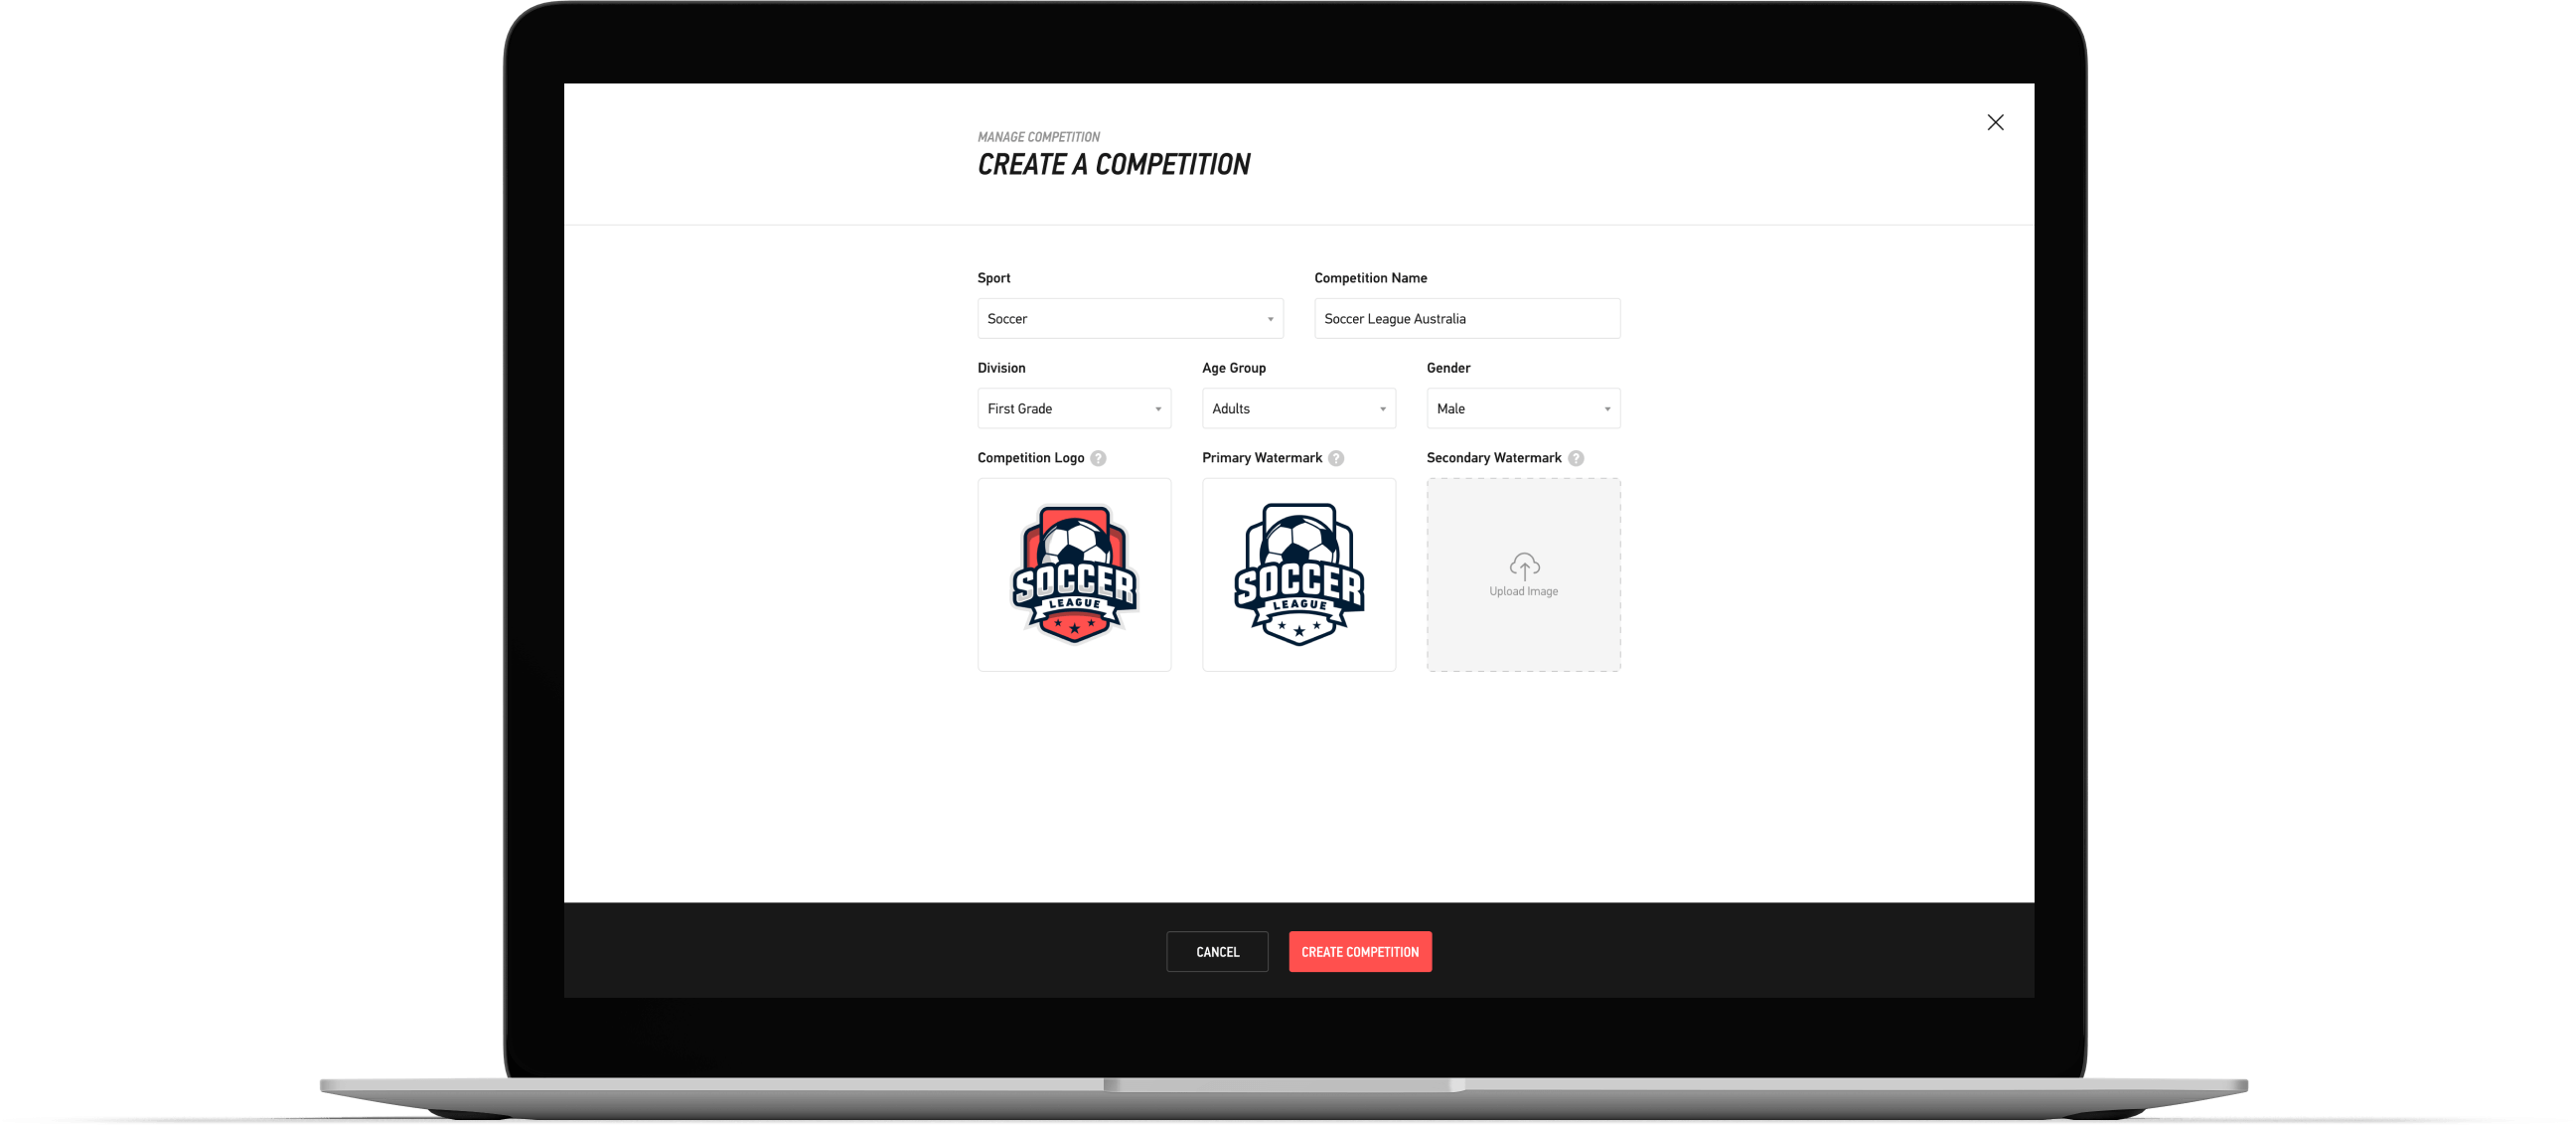 The create your competition user interface in the LIGR.Live Dashboard.